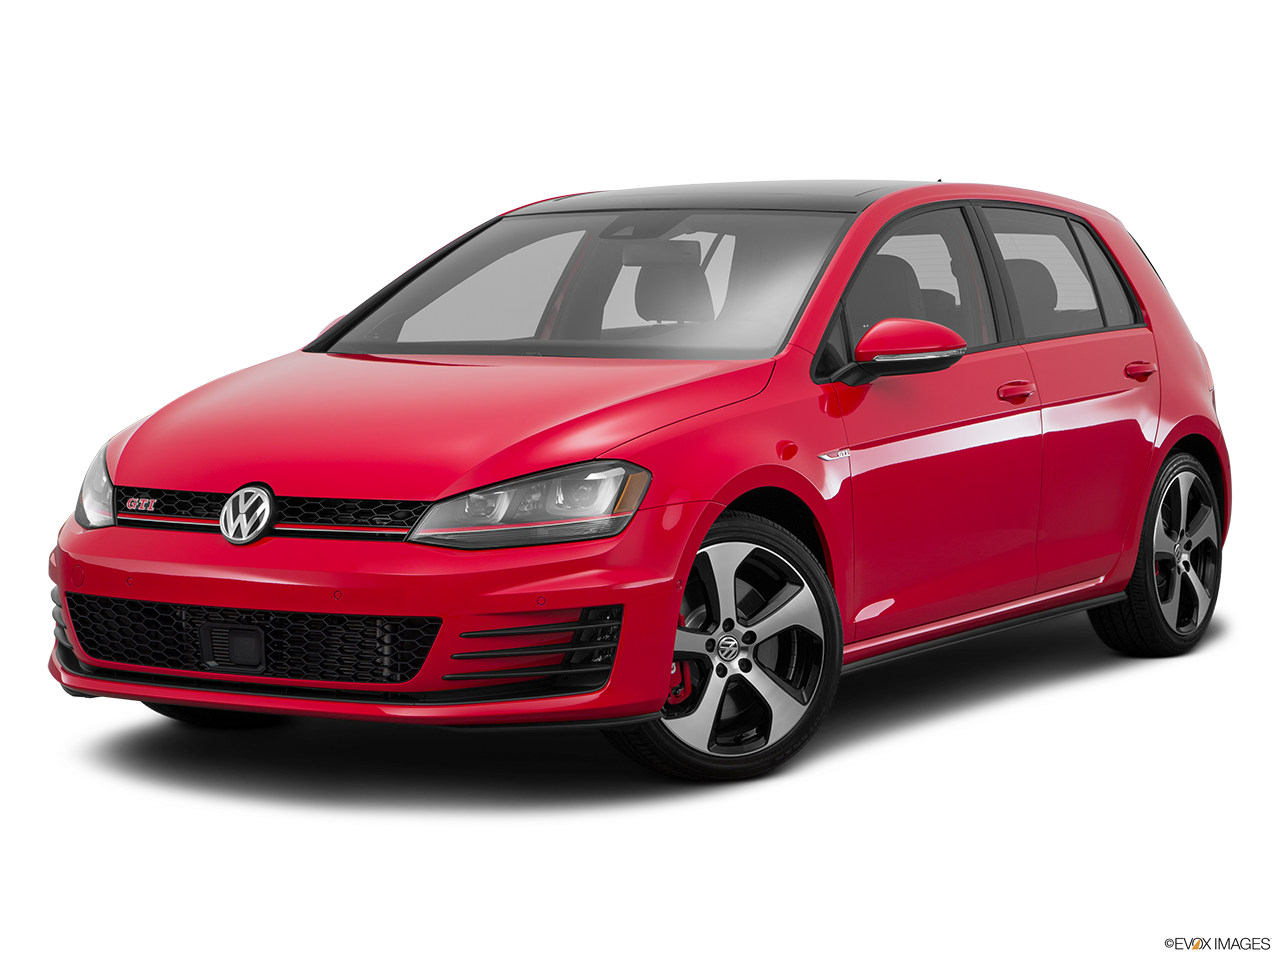 Test Drive A 2016 Volkswagen Golf GTI at Moss Bros Volkswagen of Moreno Valley in Moreno Valley